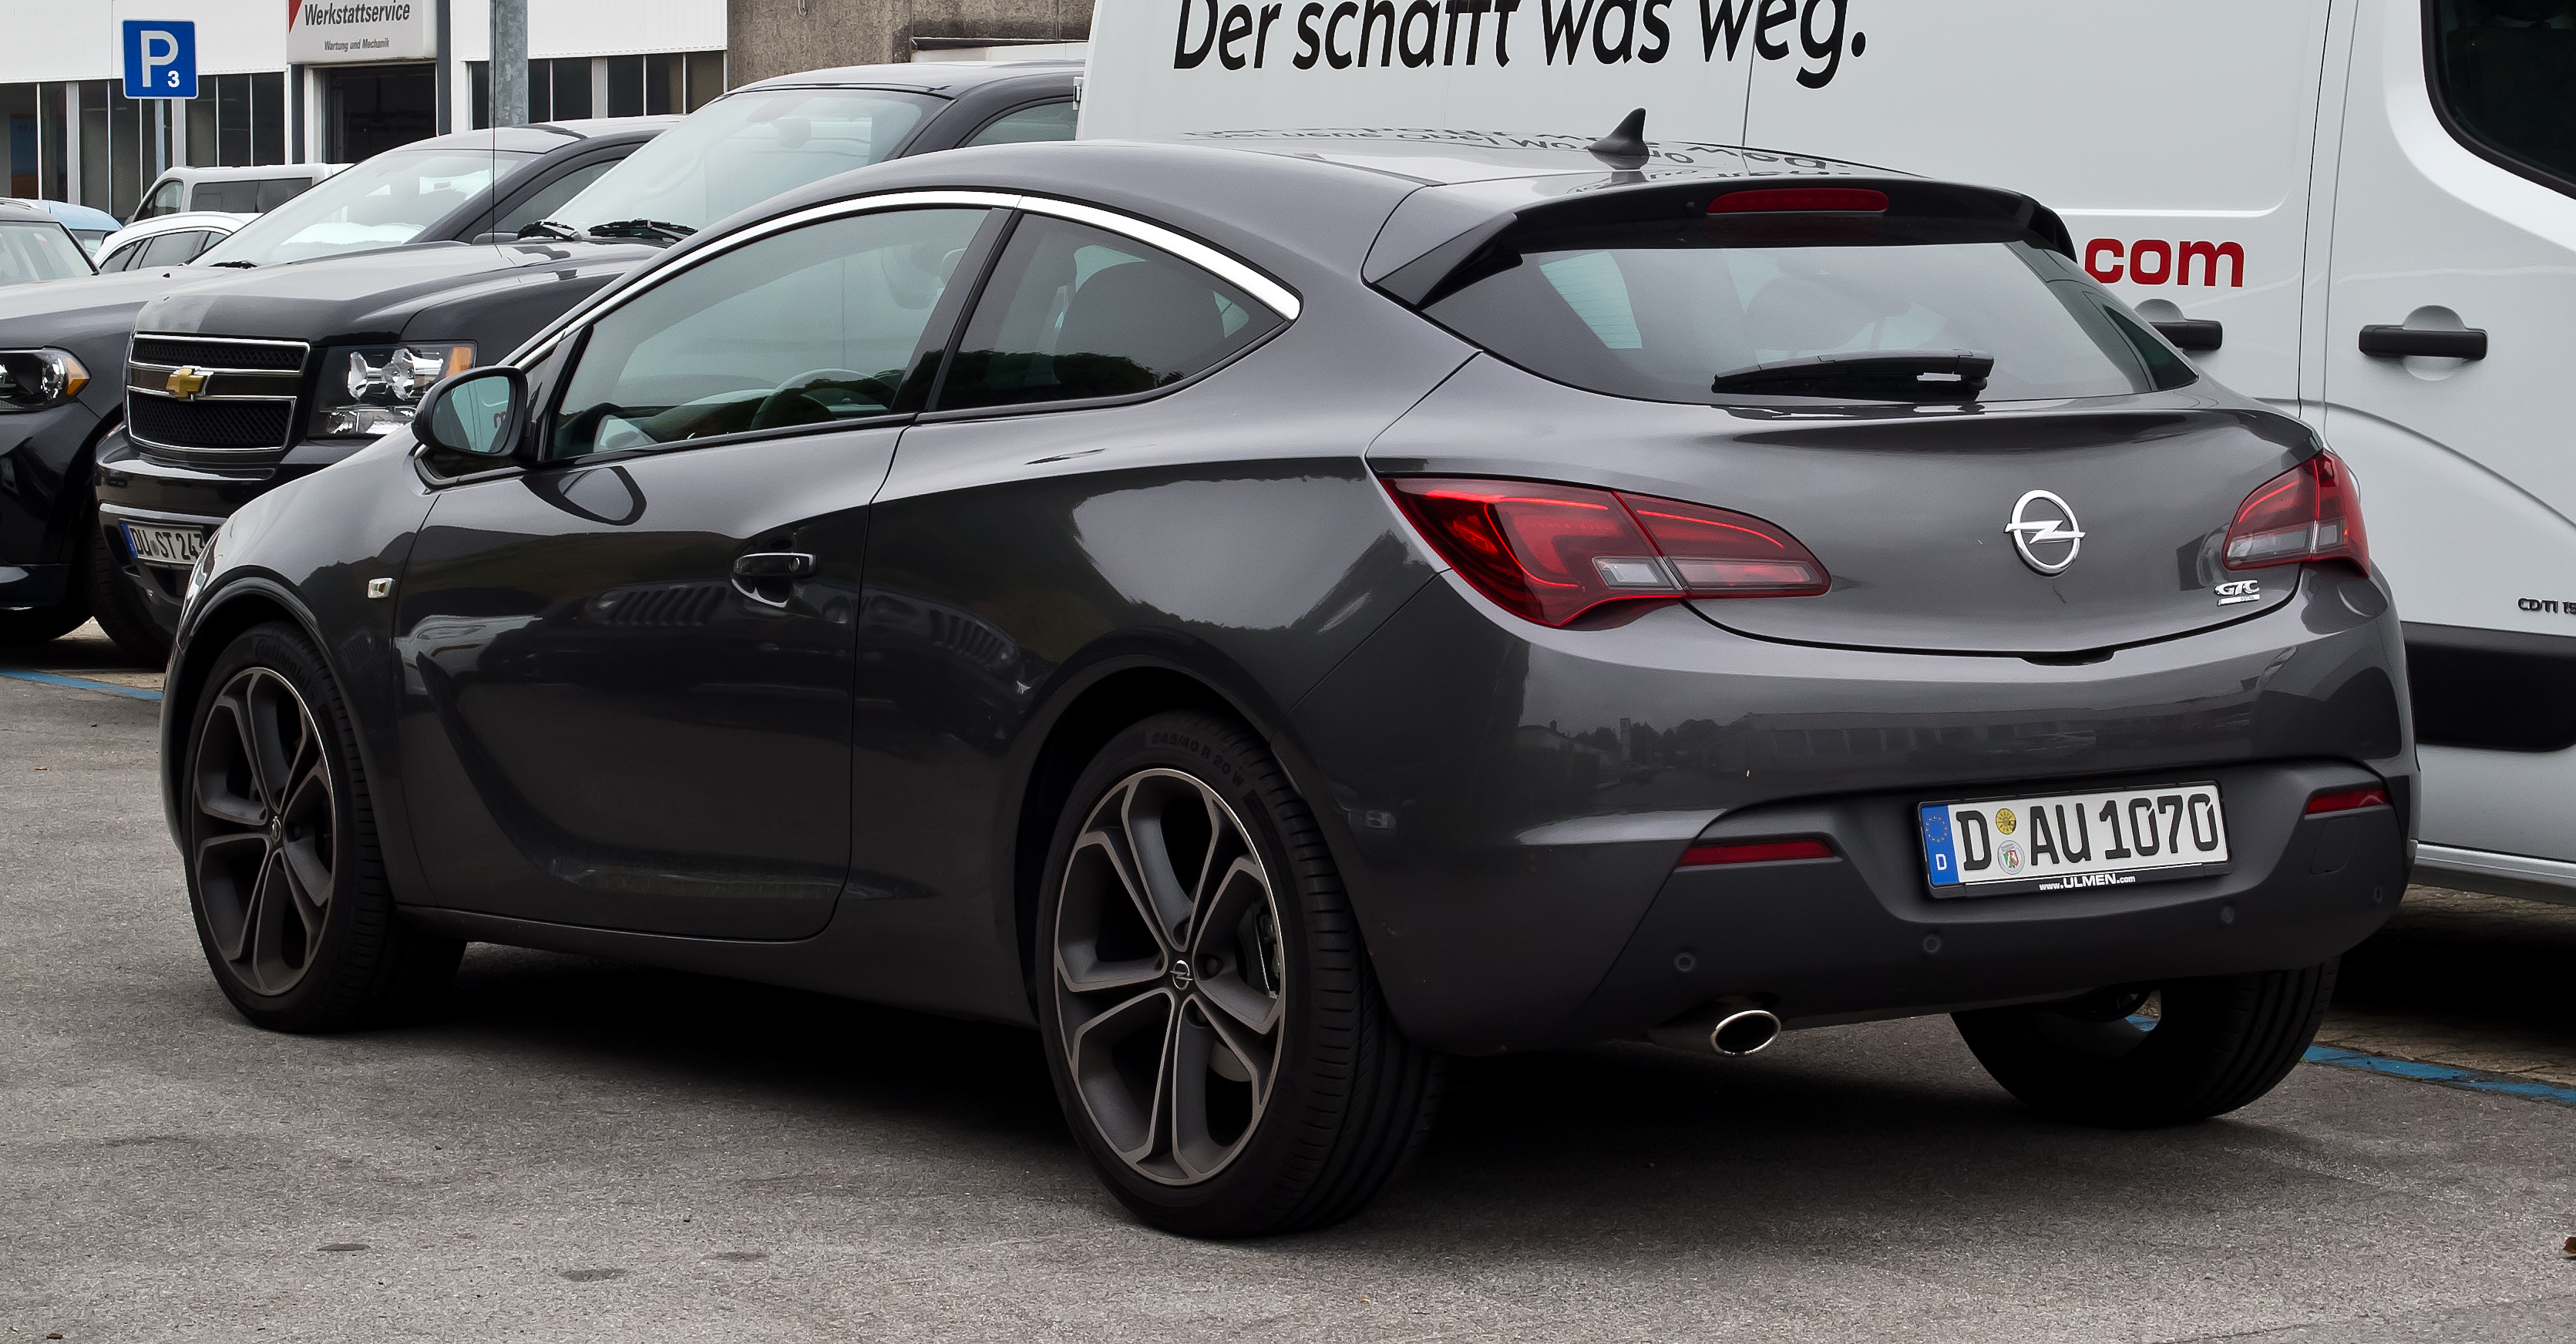 opel astra gtc technical details history photos on better parts ltd. Black Bedroom Furniture Sets. Home Design Ideas